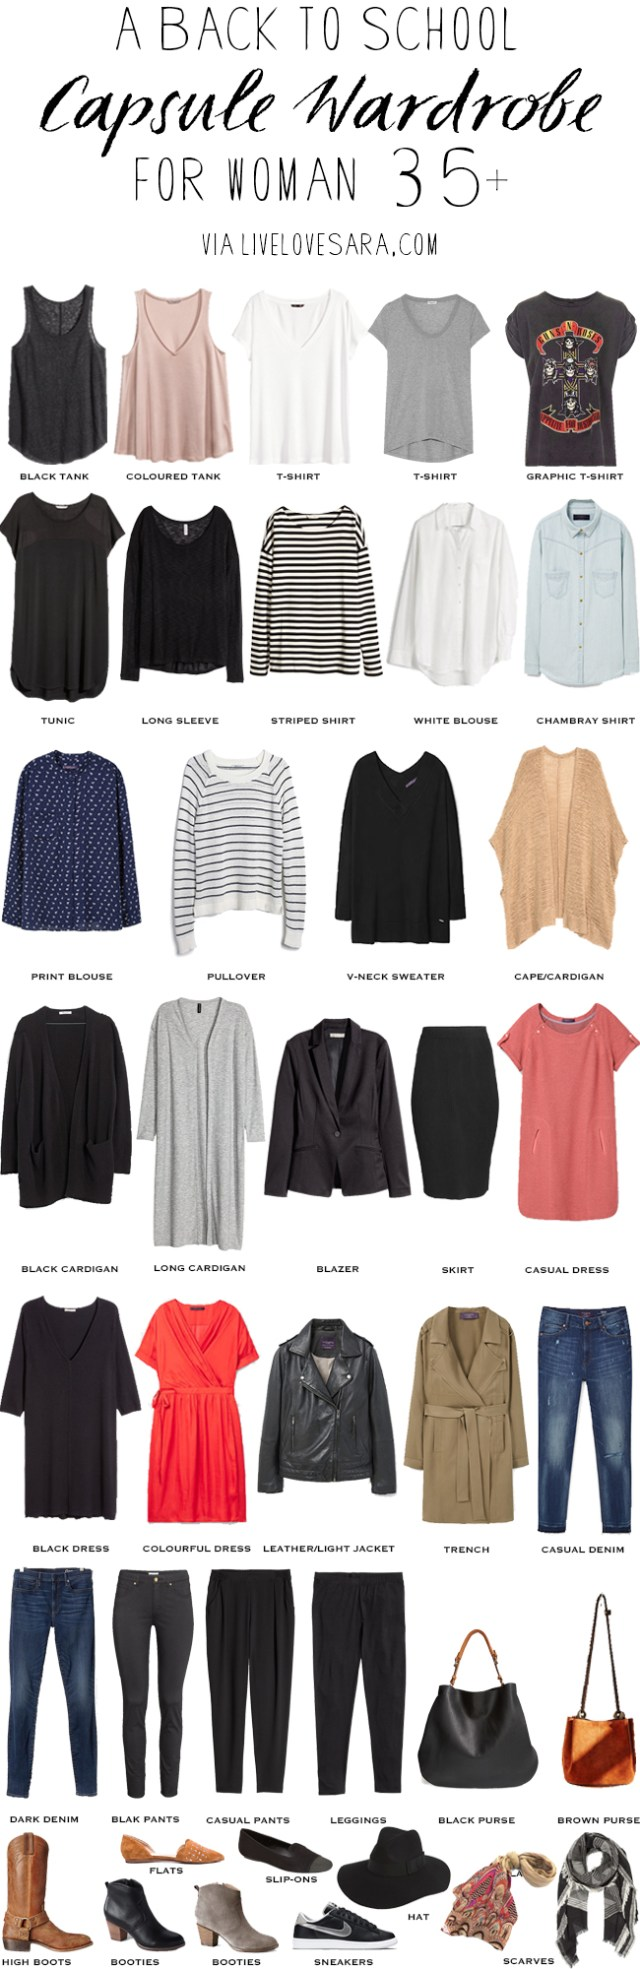 Back to School wardrobe over 35 #capsule #capsulewardrobe #overthirty #backtoschool #backtoschoolwardrobe